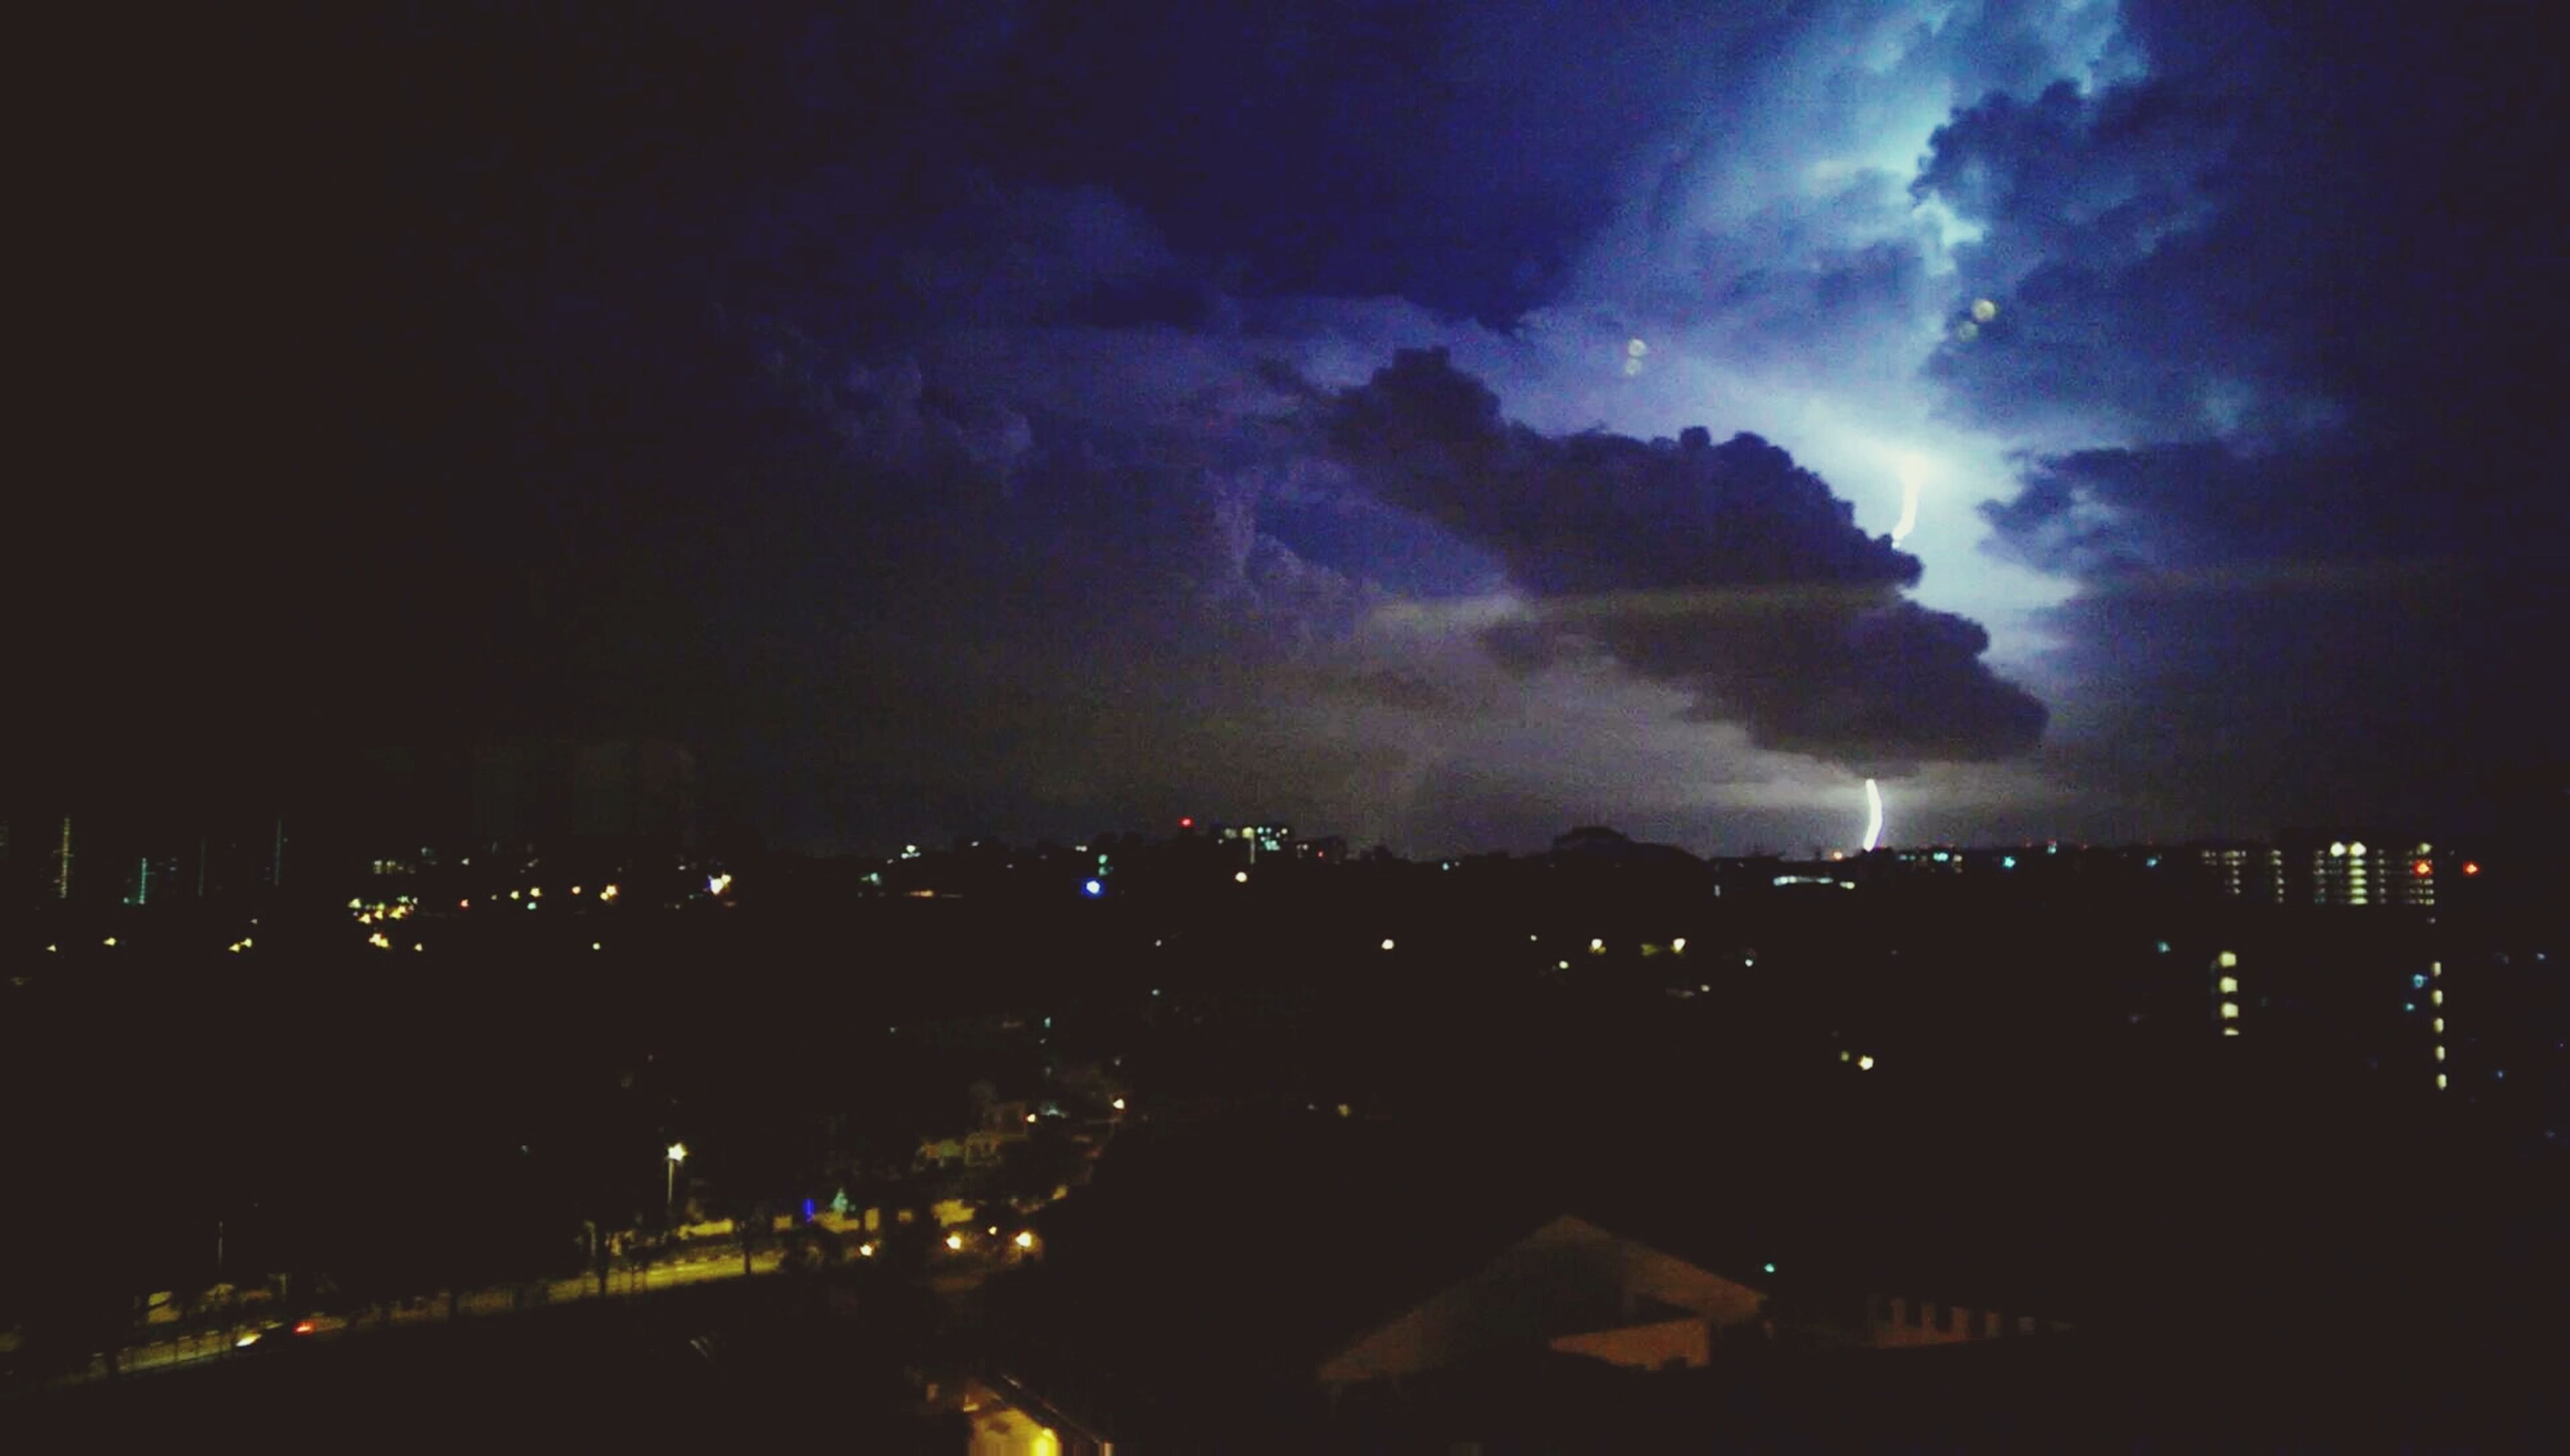 illuminated, night, building exterior, architecture, sky, city, built structure, cityscape, cloud - sky, residential building, residential district, dusk, residential structure, light - natural phenomenon, city life, lightning, storm cloud, outdoors, dark, thunderstorm